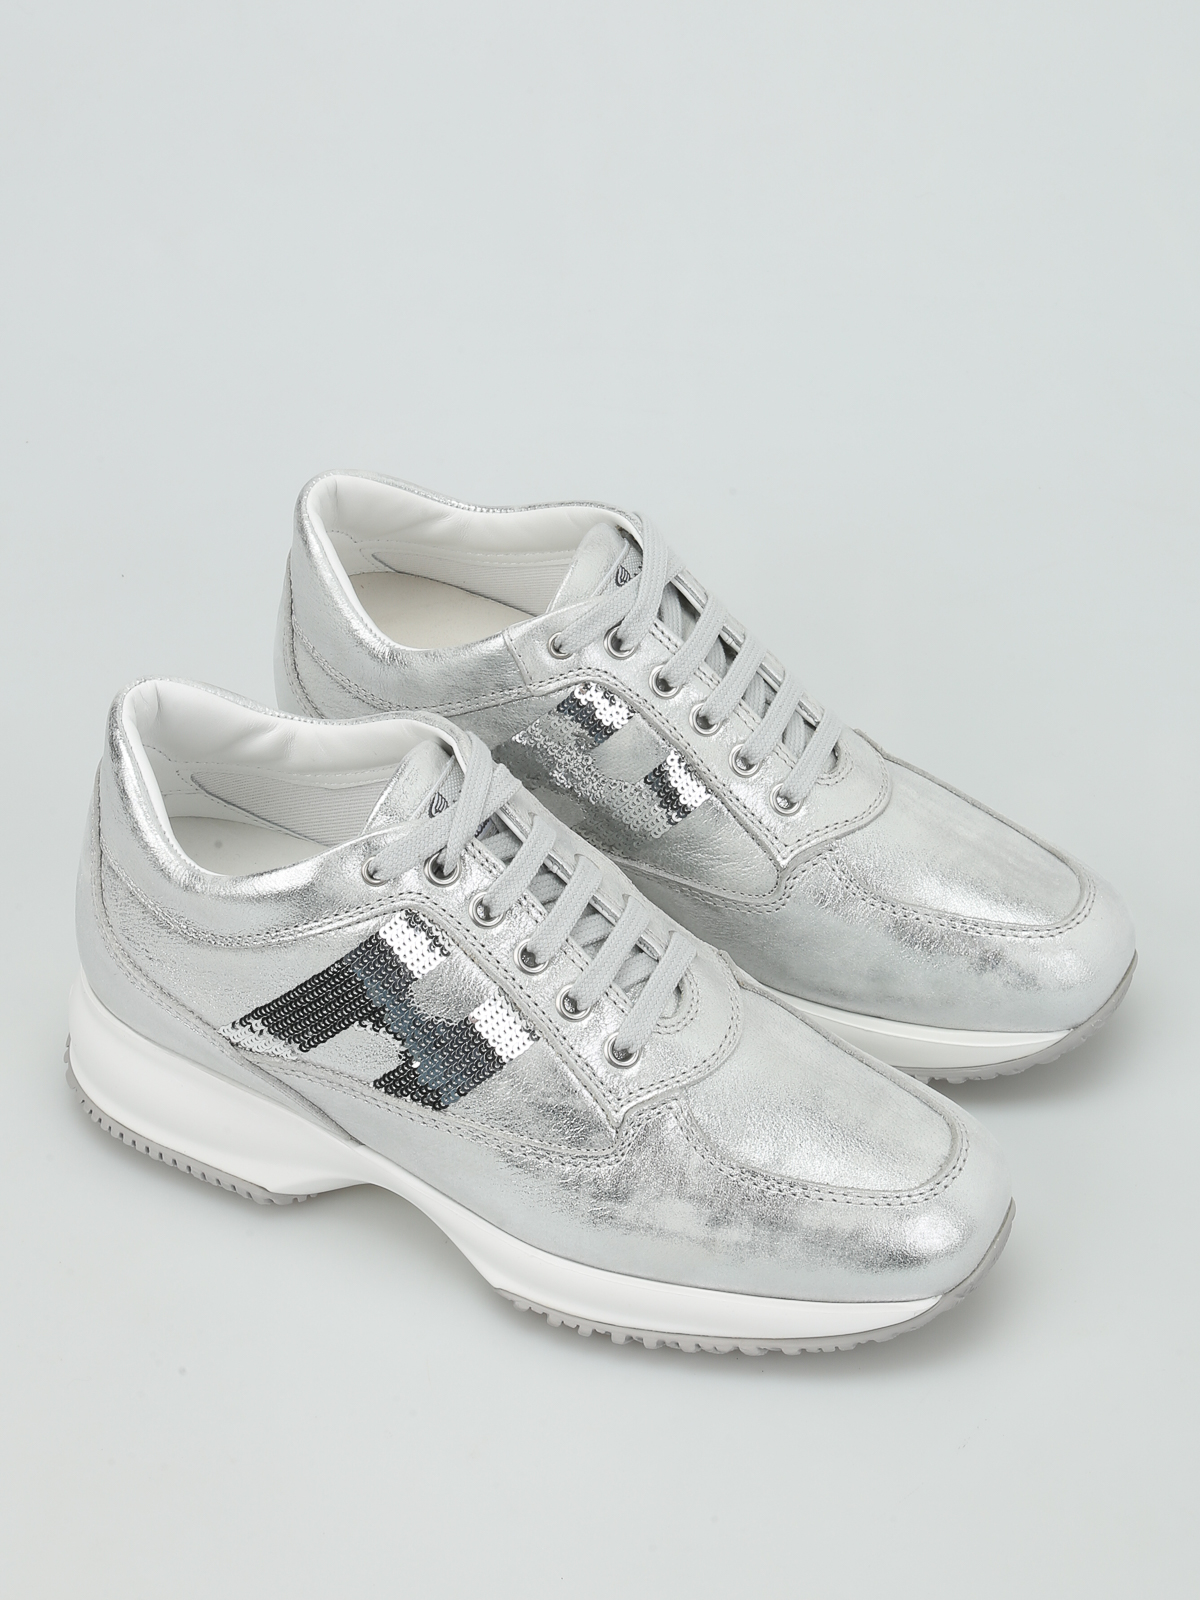 Hogan - Sequin H Interactive sneakers - trainers - HXW00N05641FF7B200